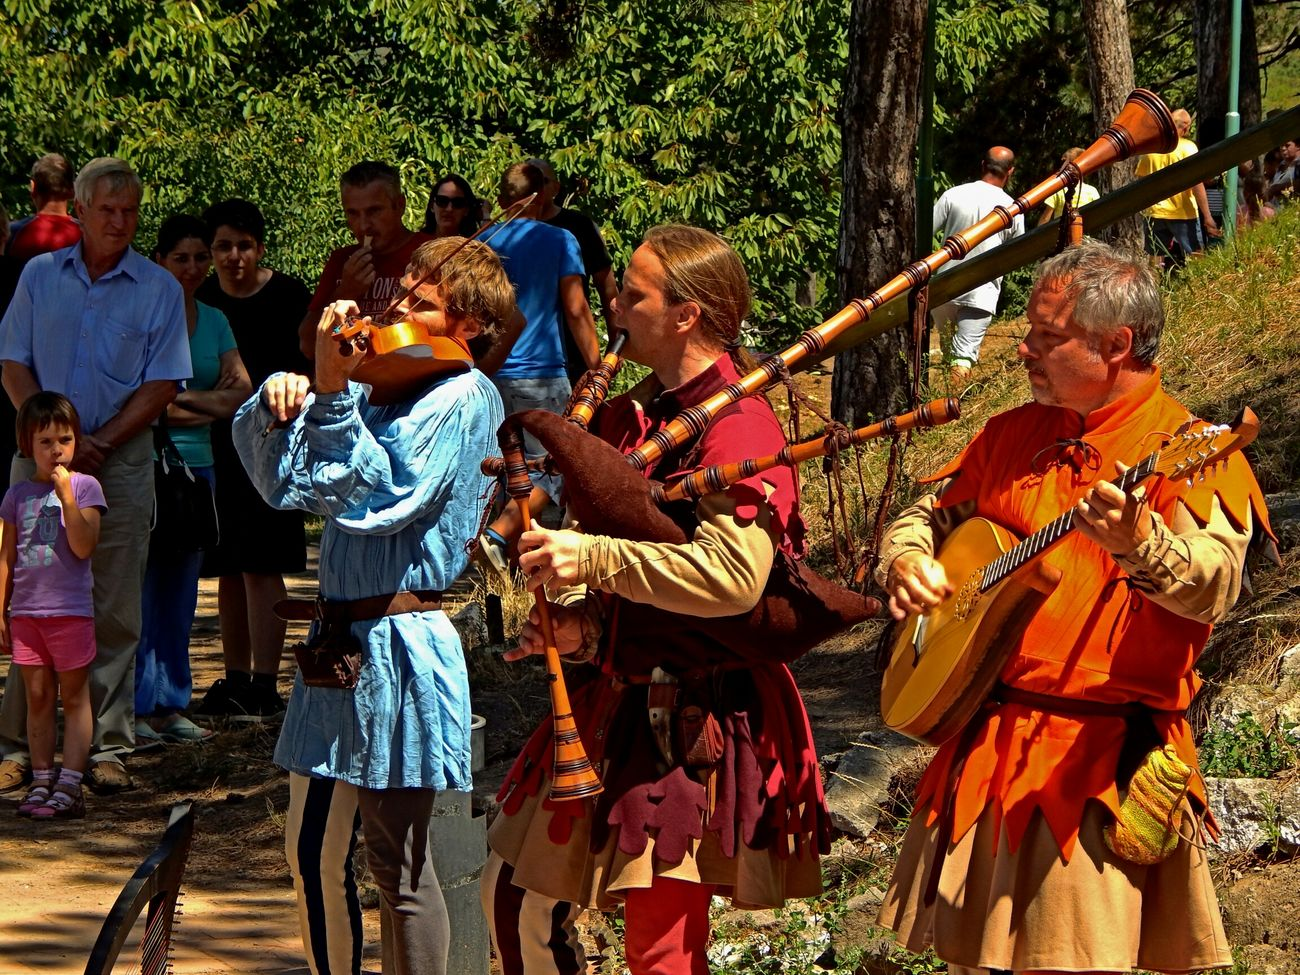 Medieval troubadours Eyeem Hungary Hungary Popular Photos Festival Listening To Music Live Music Medieval Days Historical Moments Renaissance Festival EyeEm Best Edits